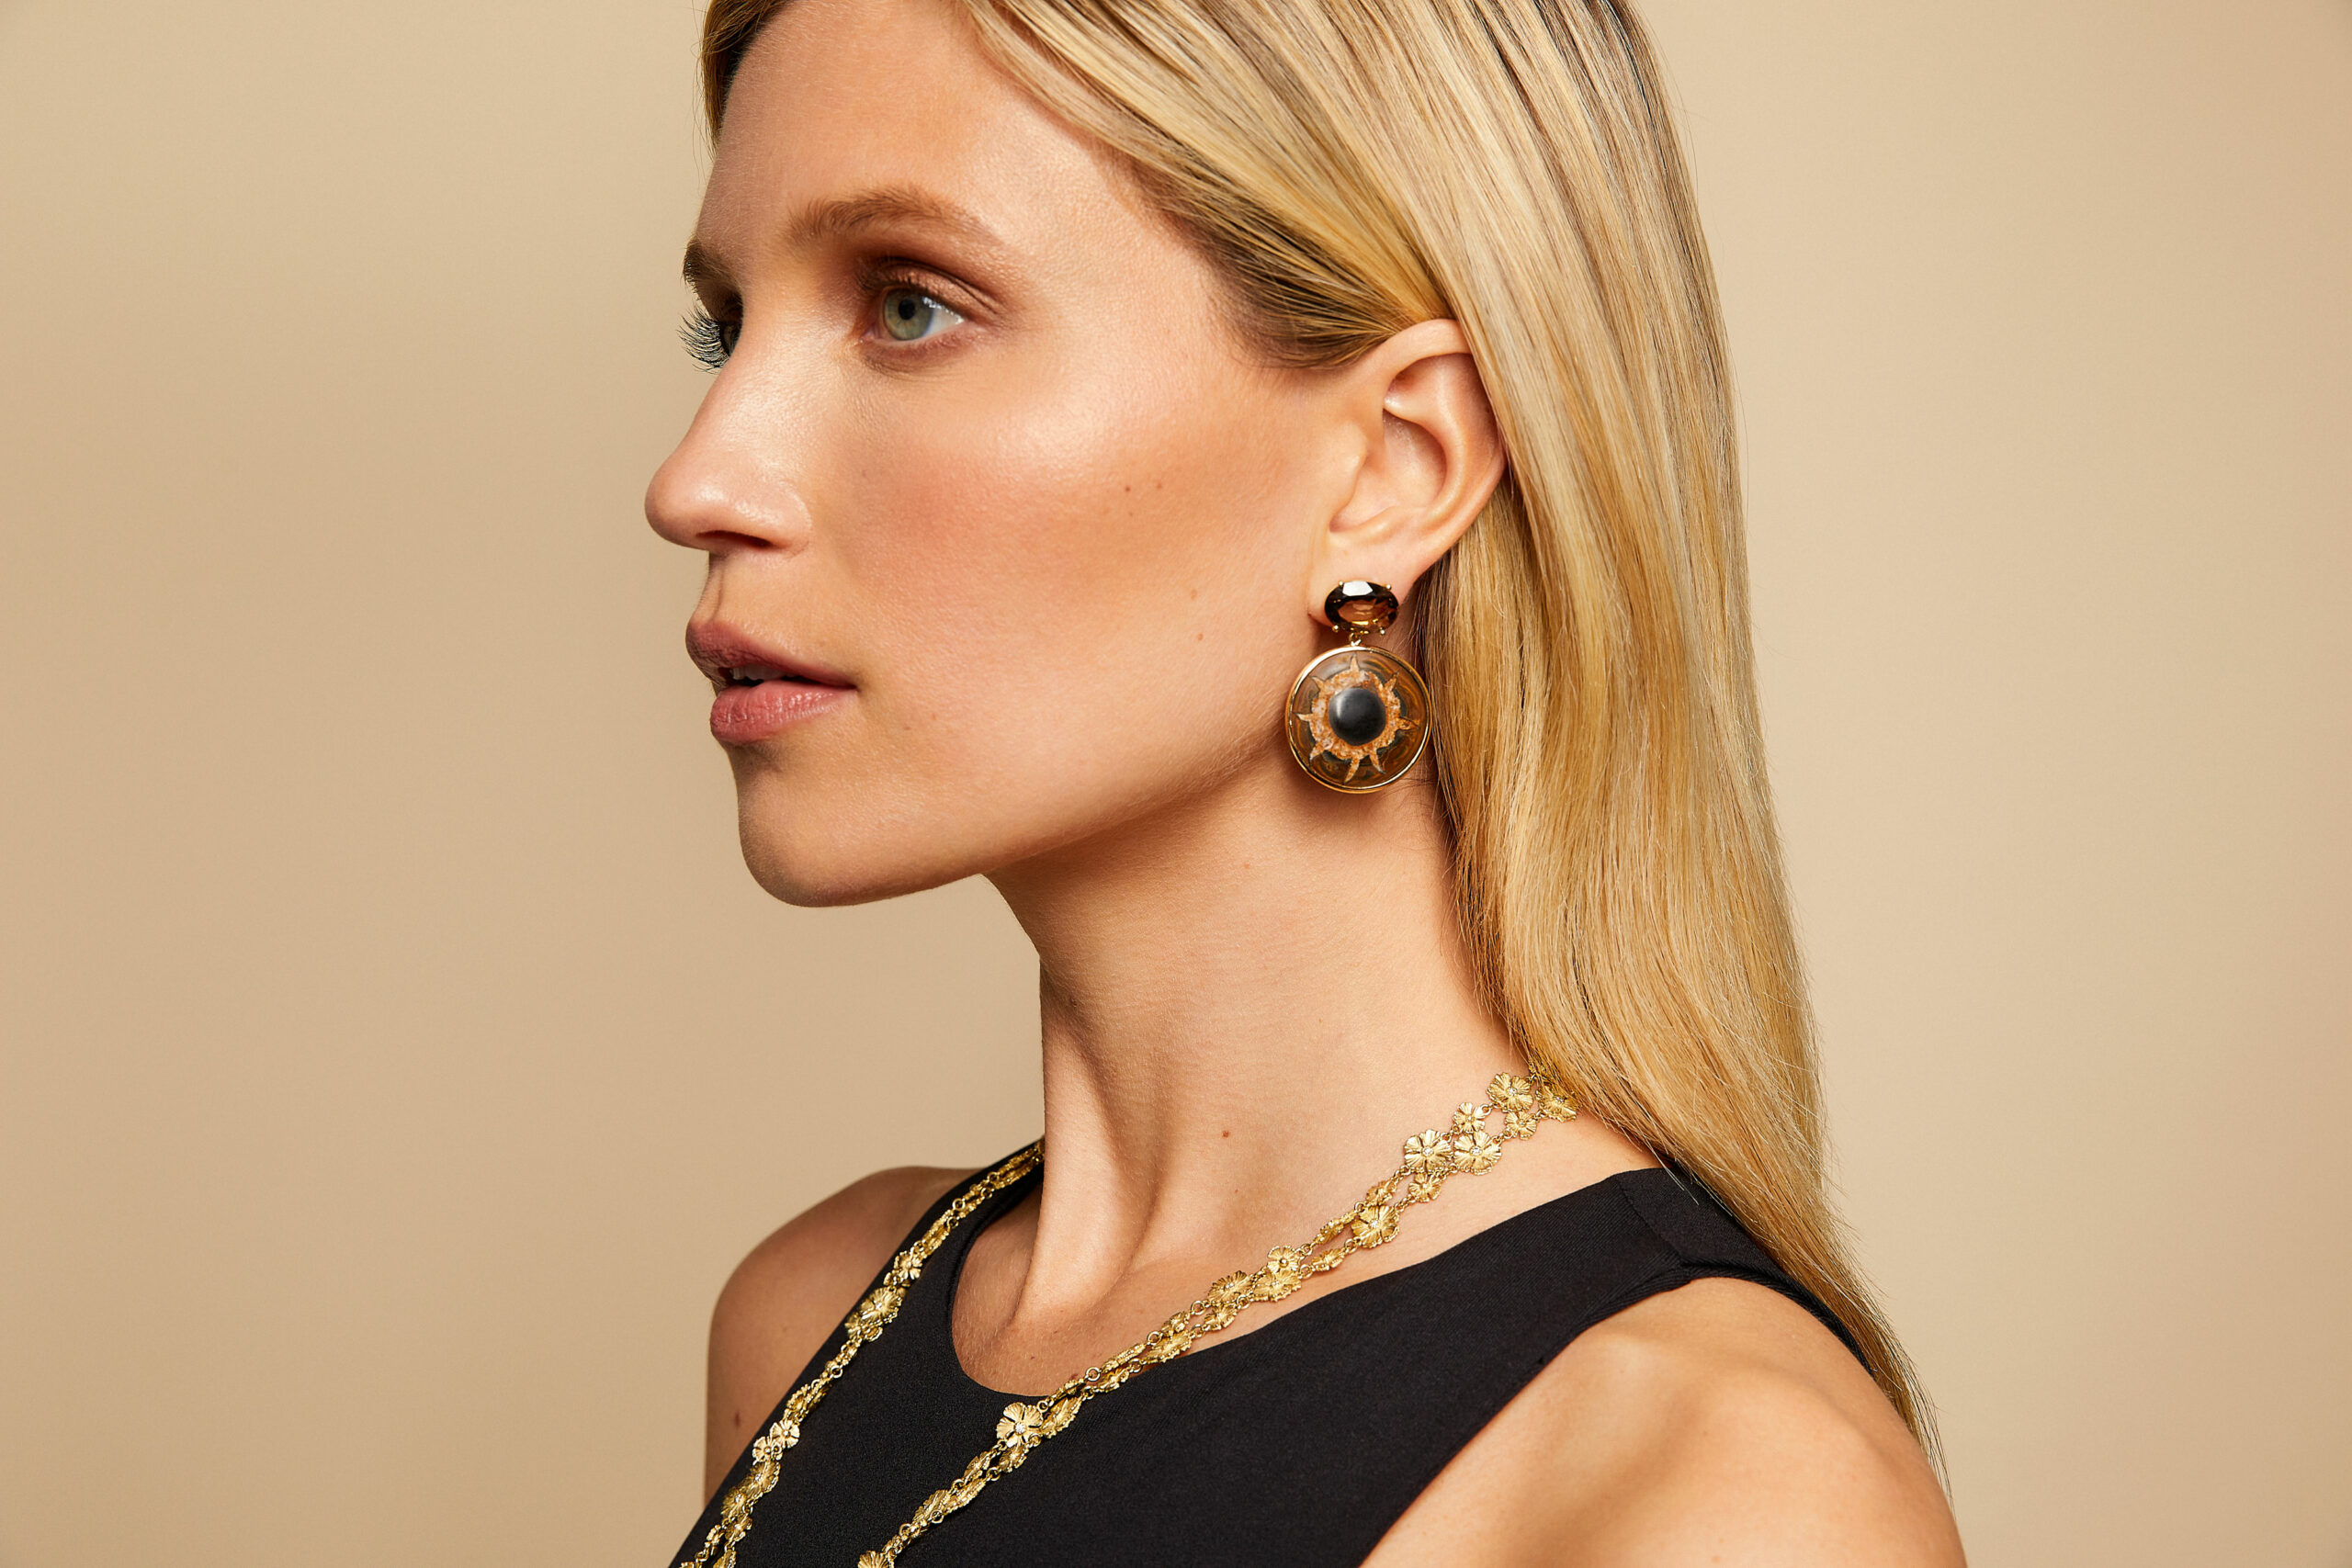 mish_necklaces_StrawFlwr-Classic 42-NK-Editorial-1